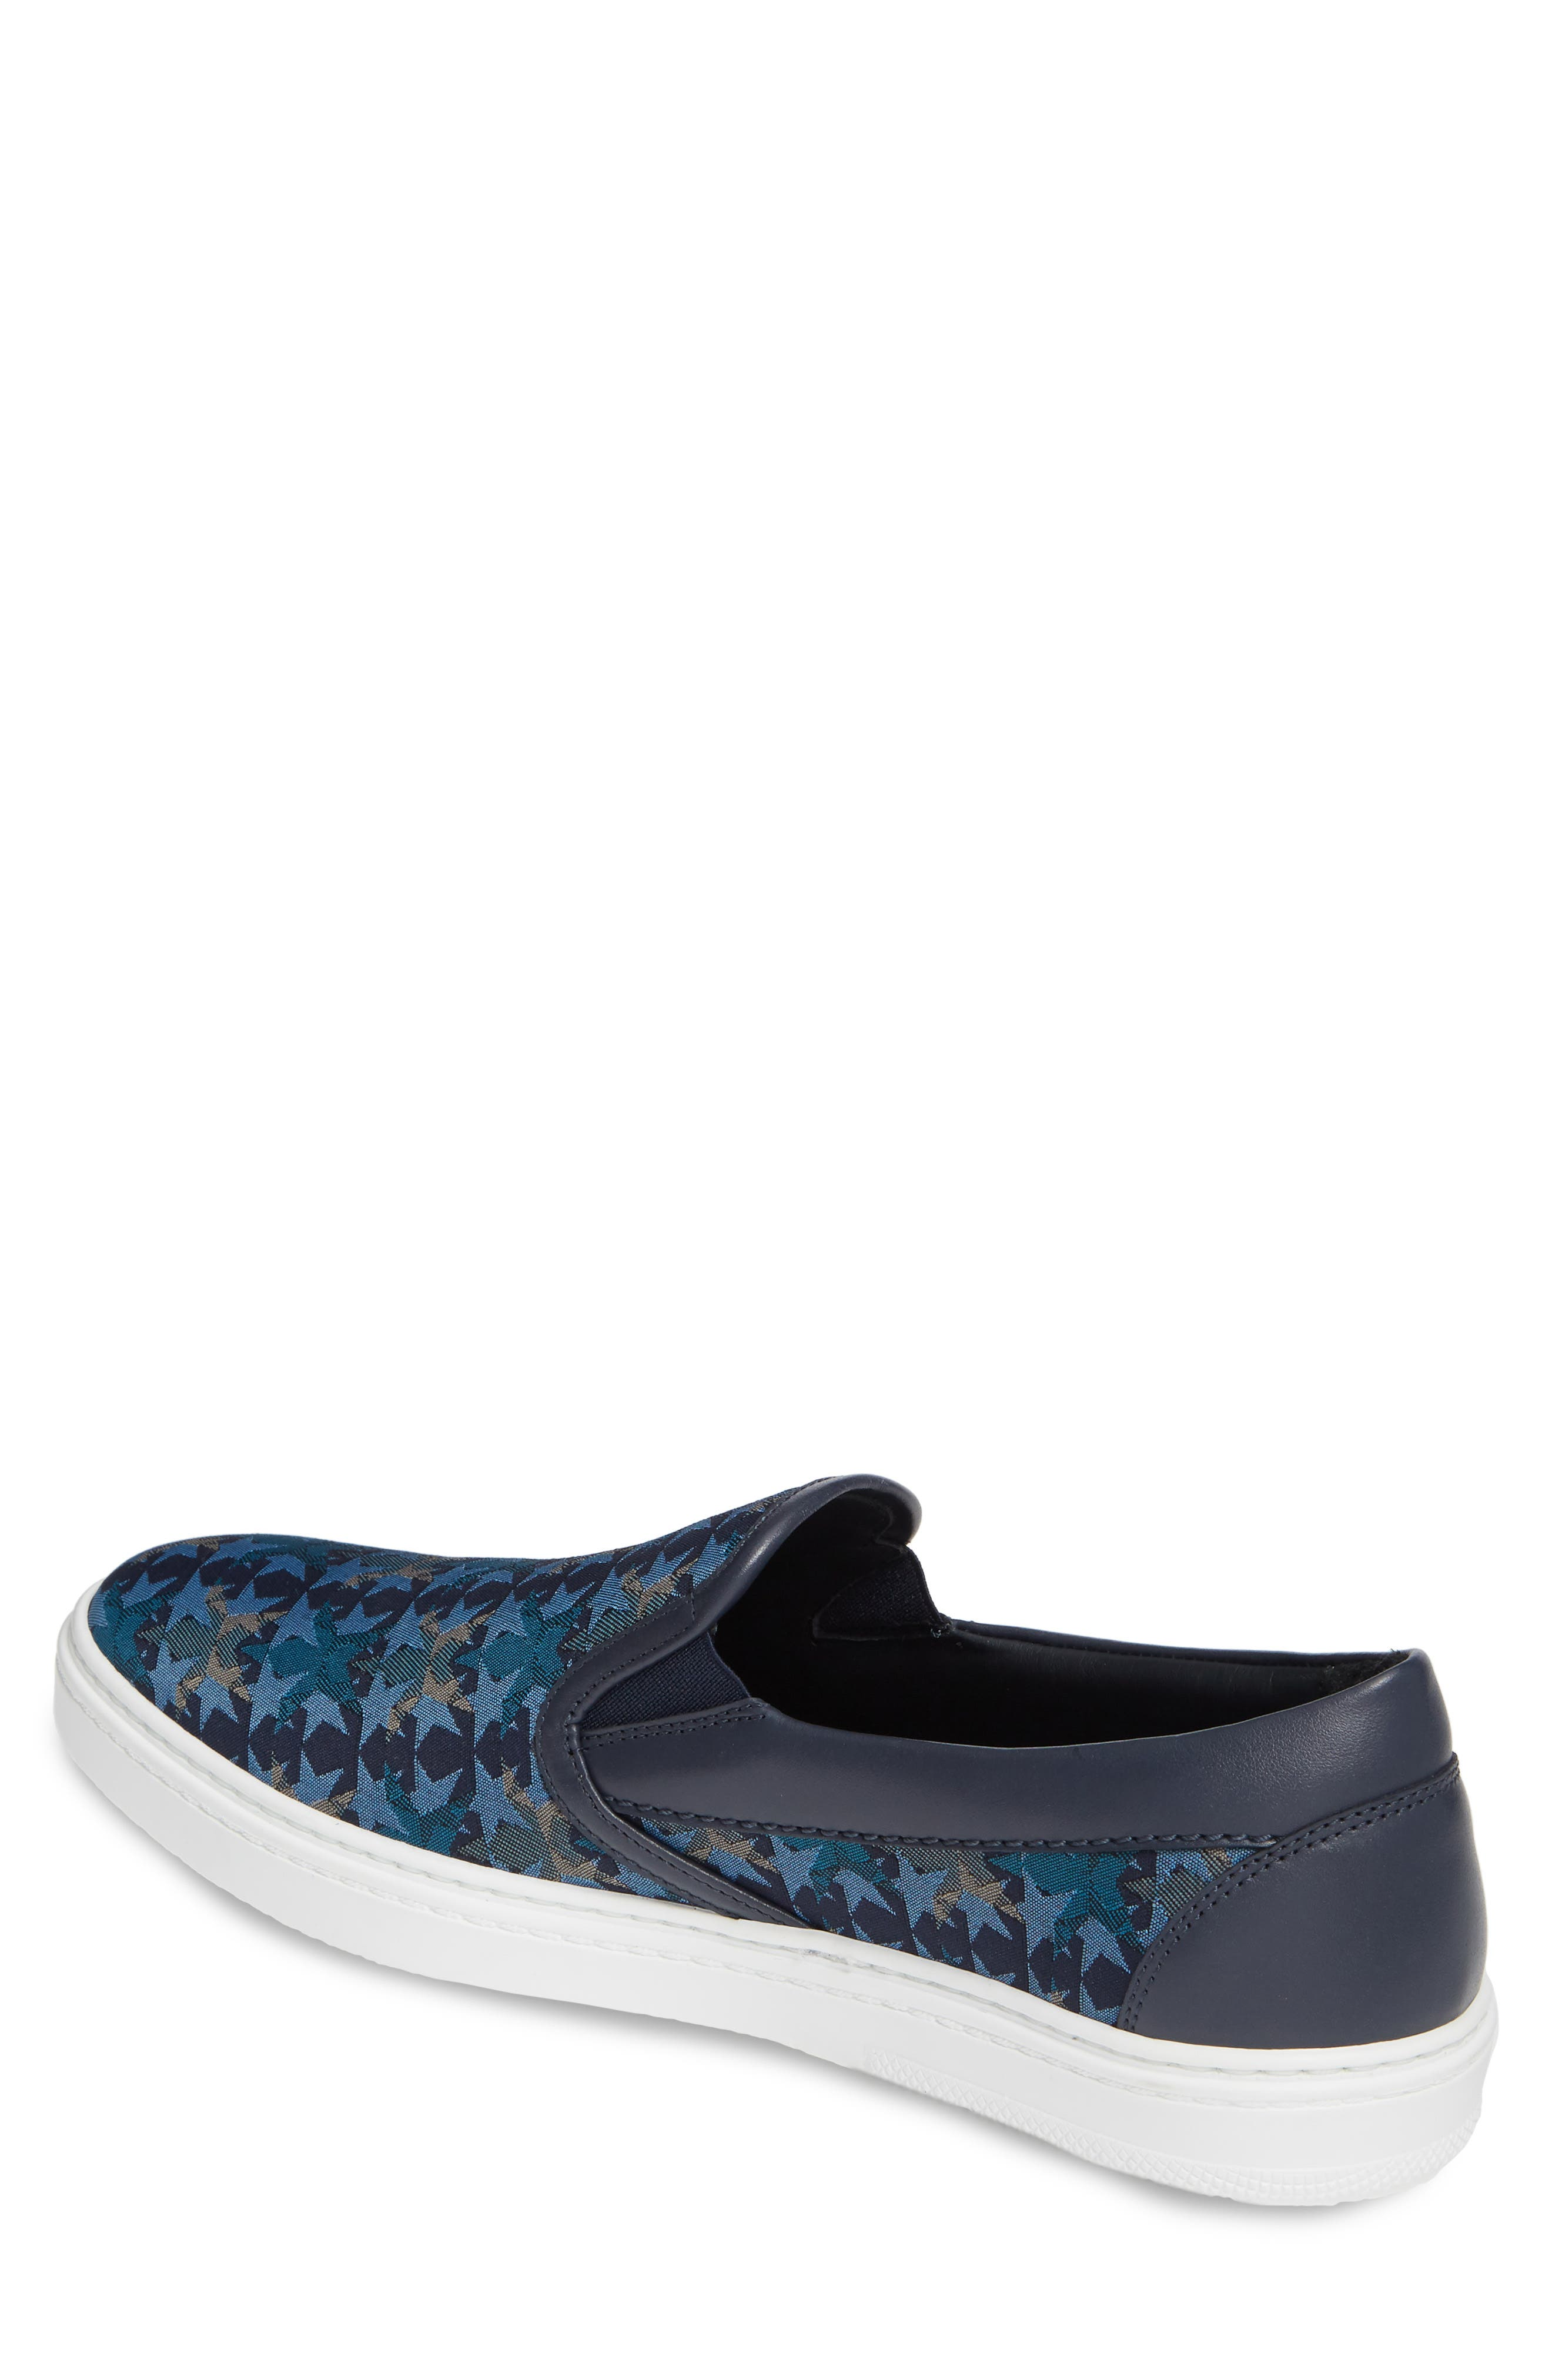 JIMMY CHOO, Grove Slip-On, Alternate thumbnail 2, color, 420